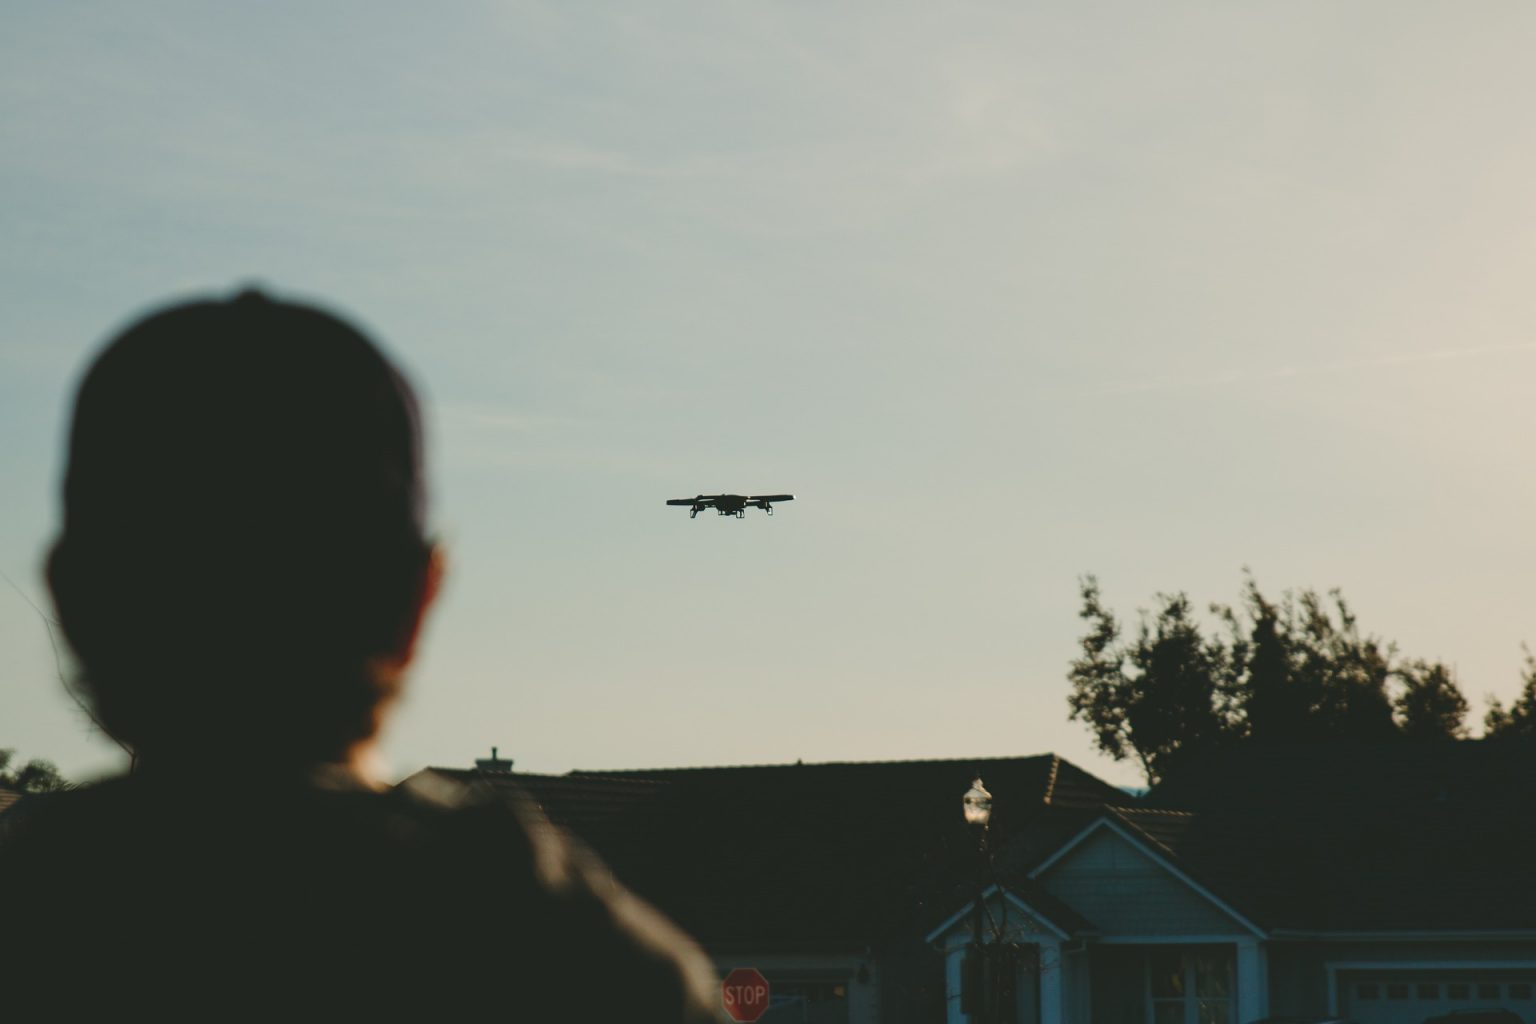 Swarm UAV Attack: Time to Revisit Threat Assessments